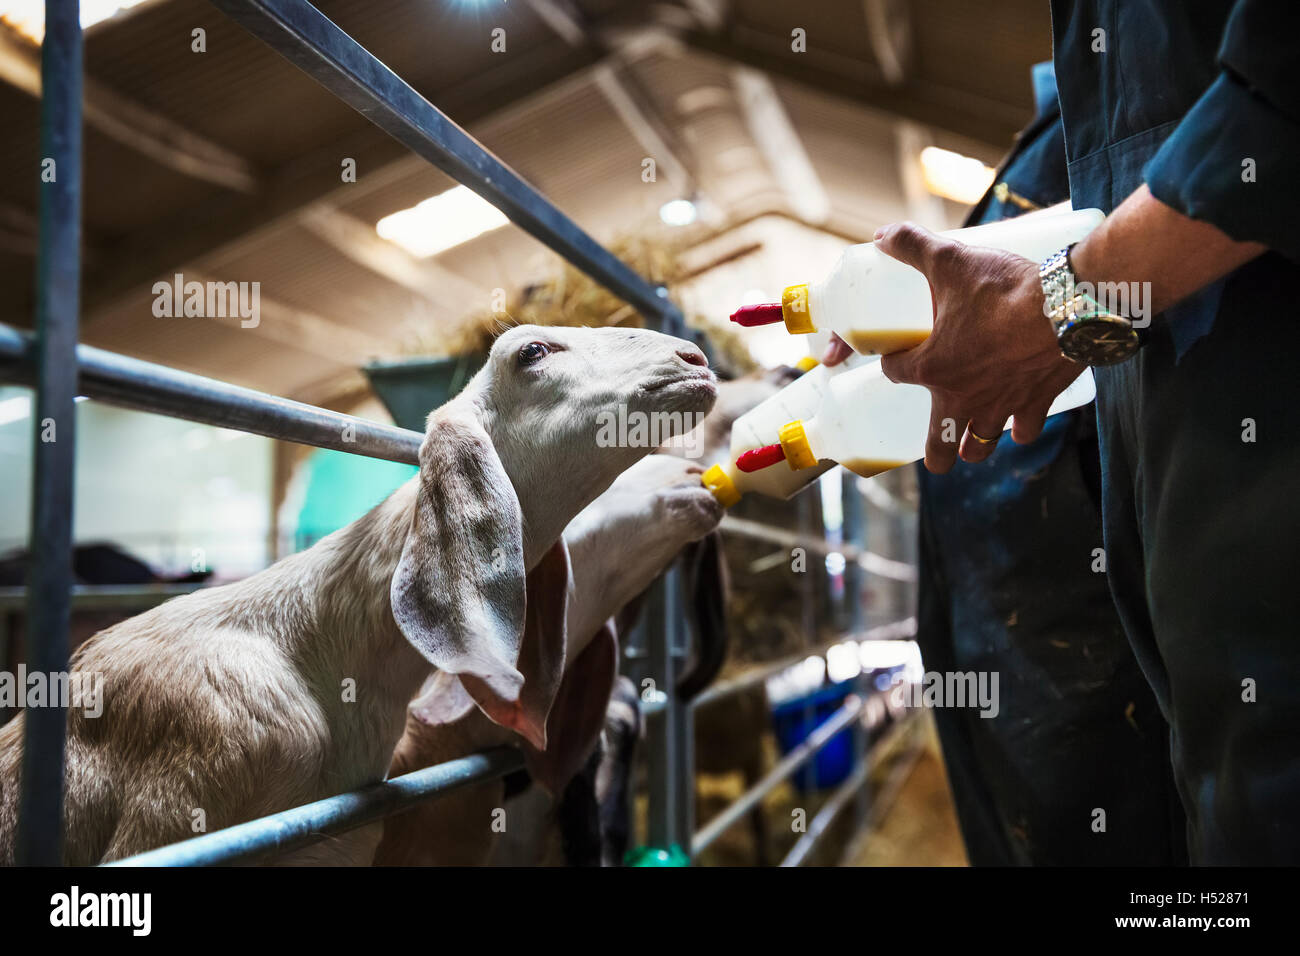 Close up of goats being bottle-fed in a stable. - Stock Image